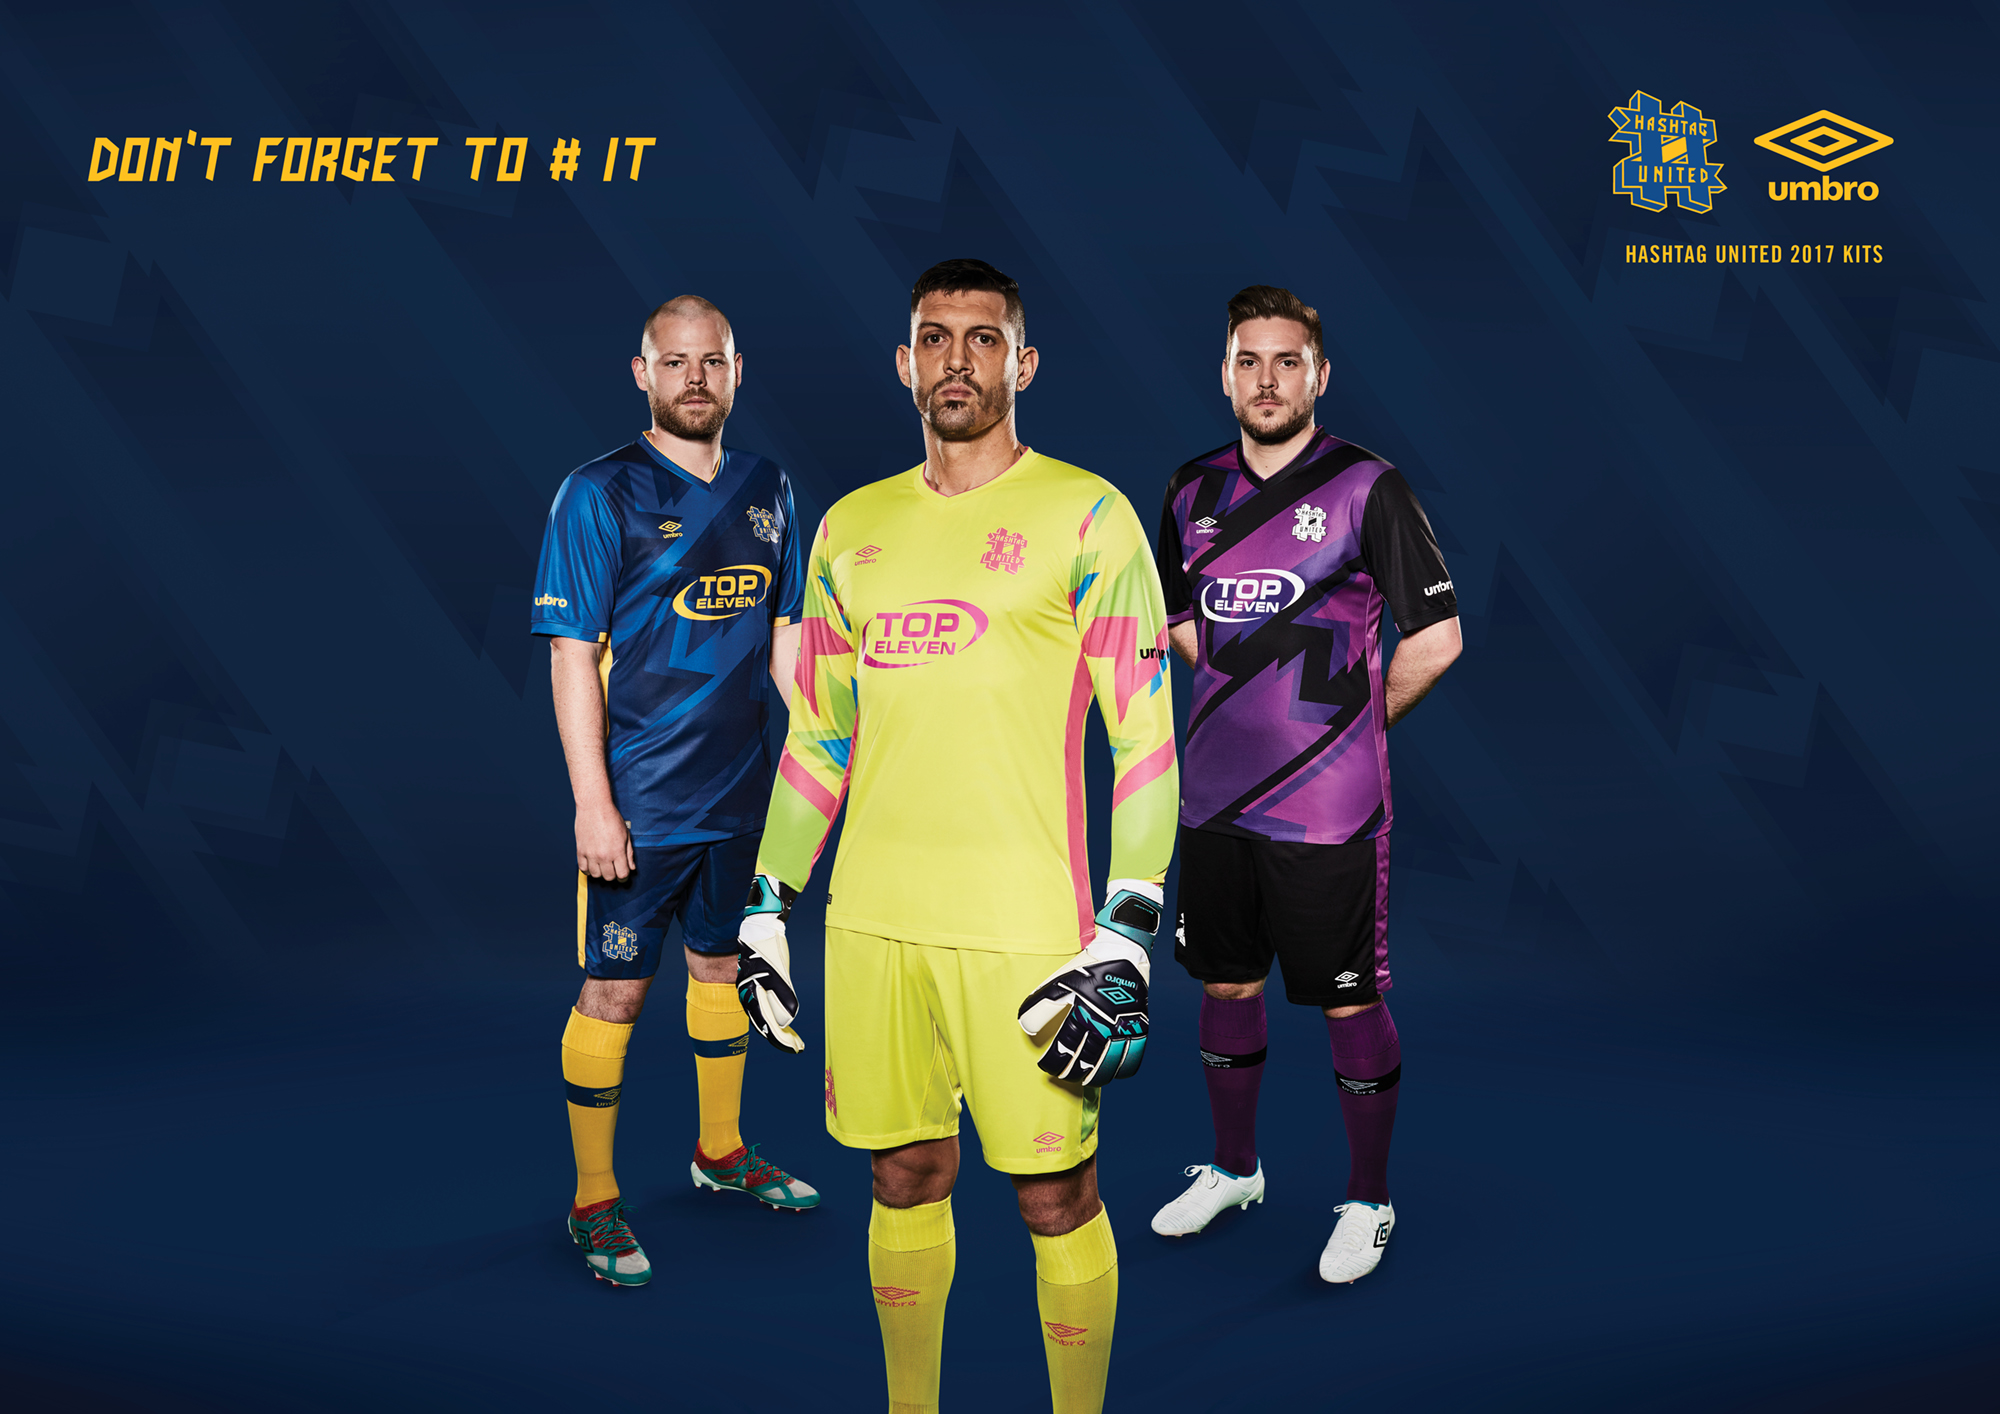 ffaed5a74 HASHTAG UNITED HOME AND AWAY BY UMBRO — IBWM